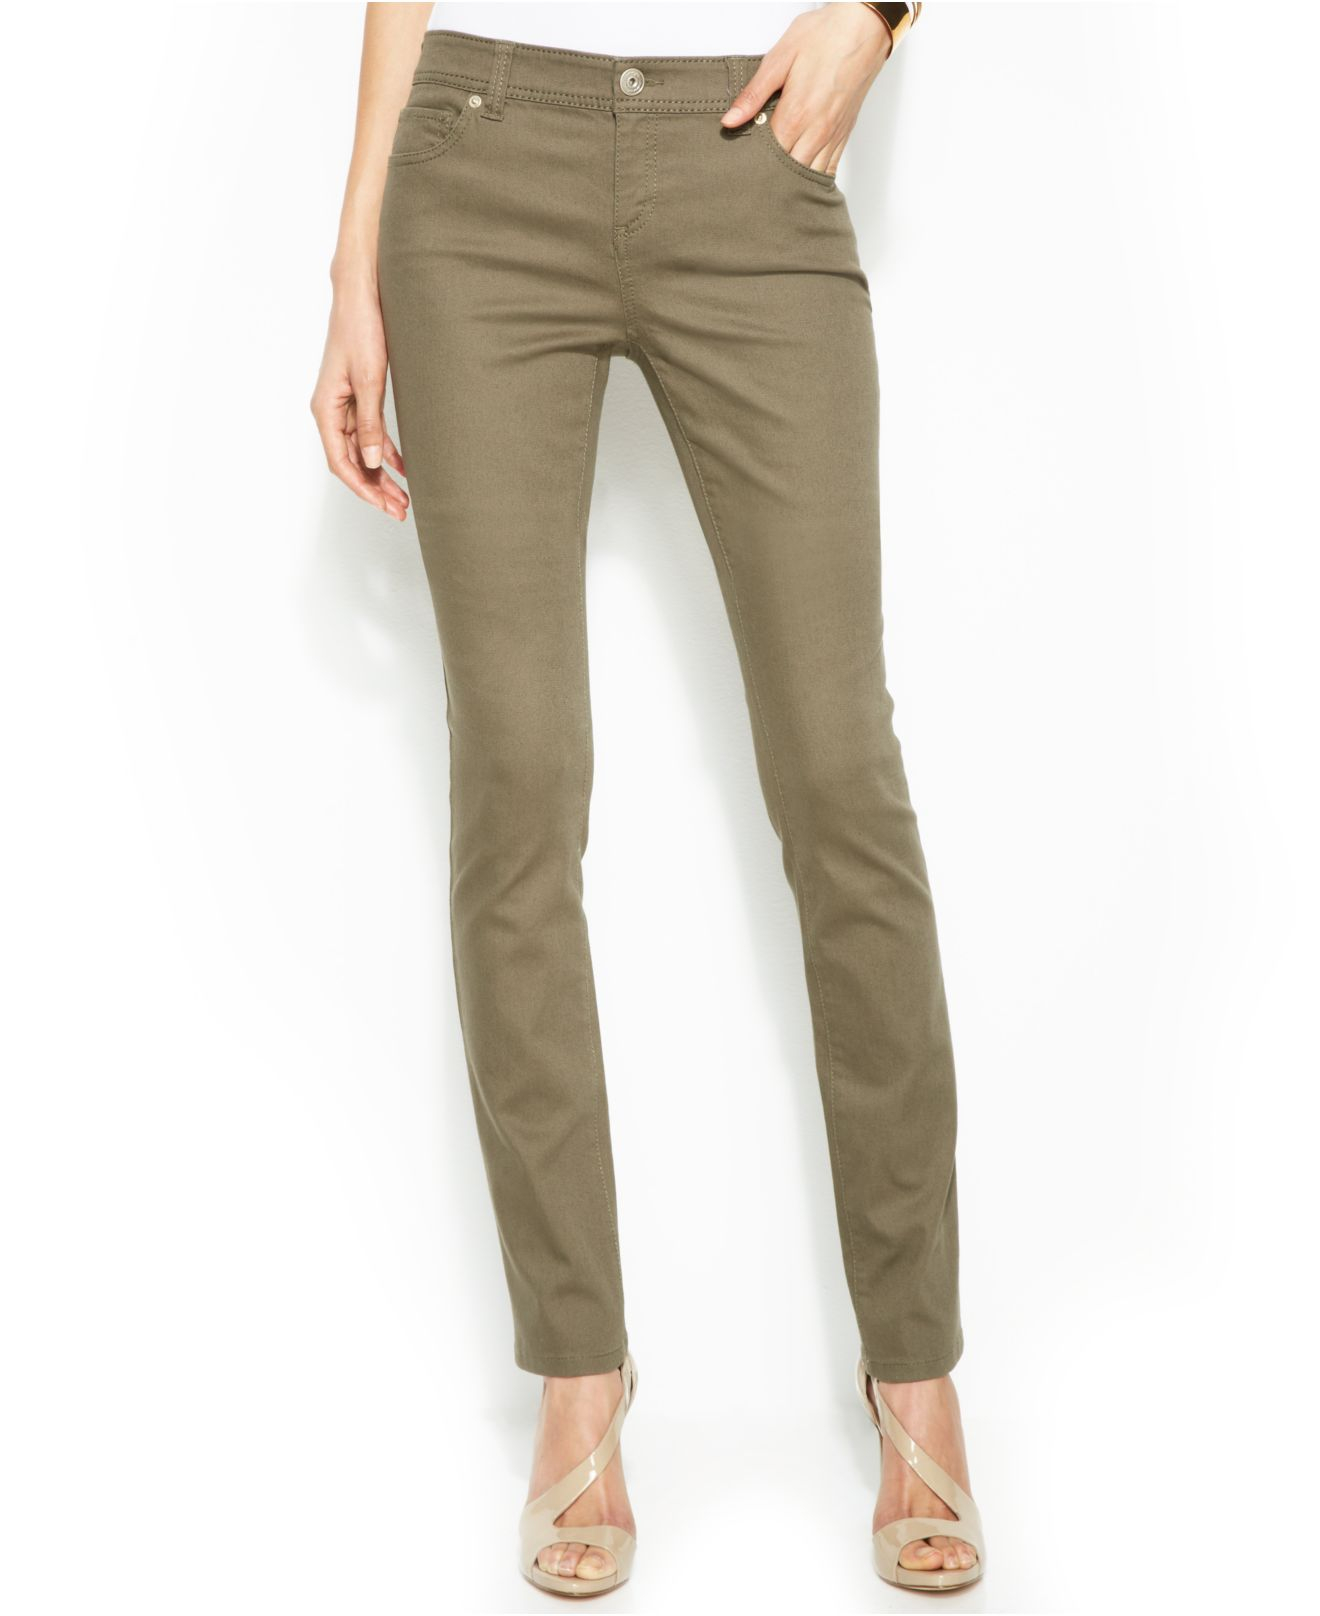 Inc international concepts Colored Skinny Jeans in Green | Lyst